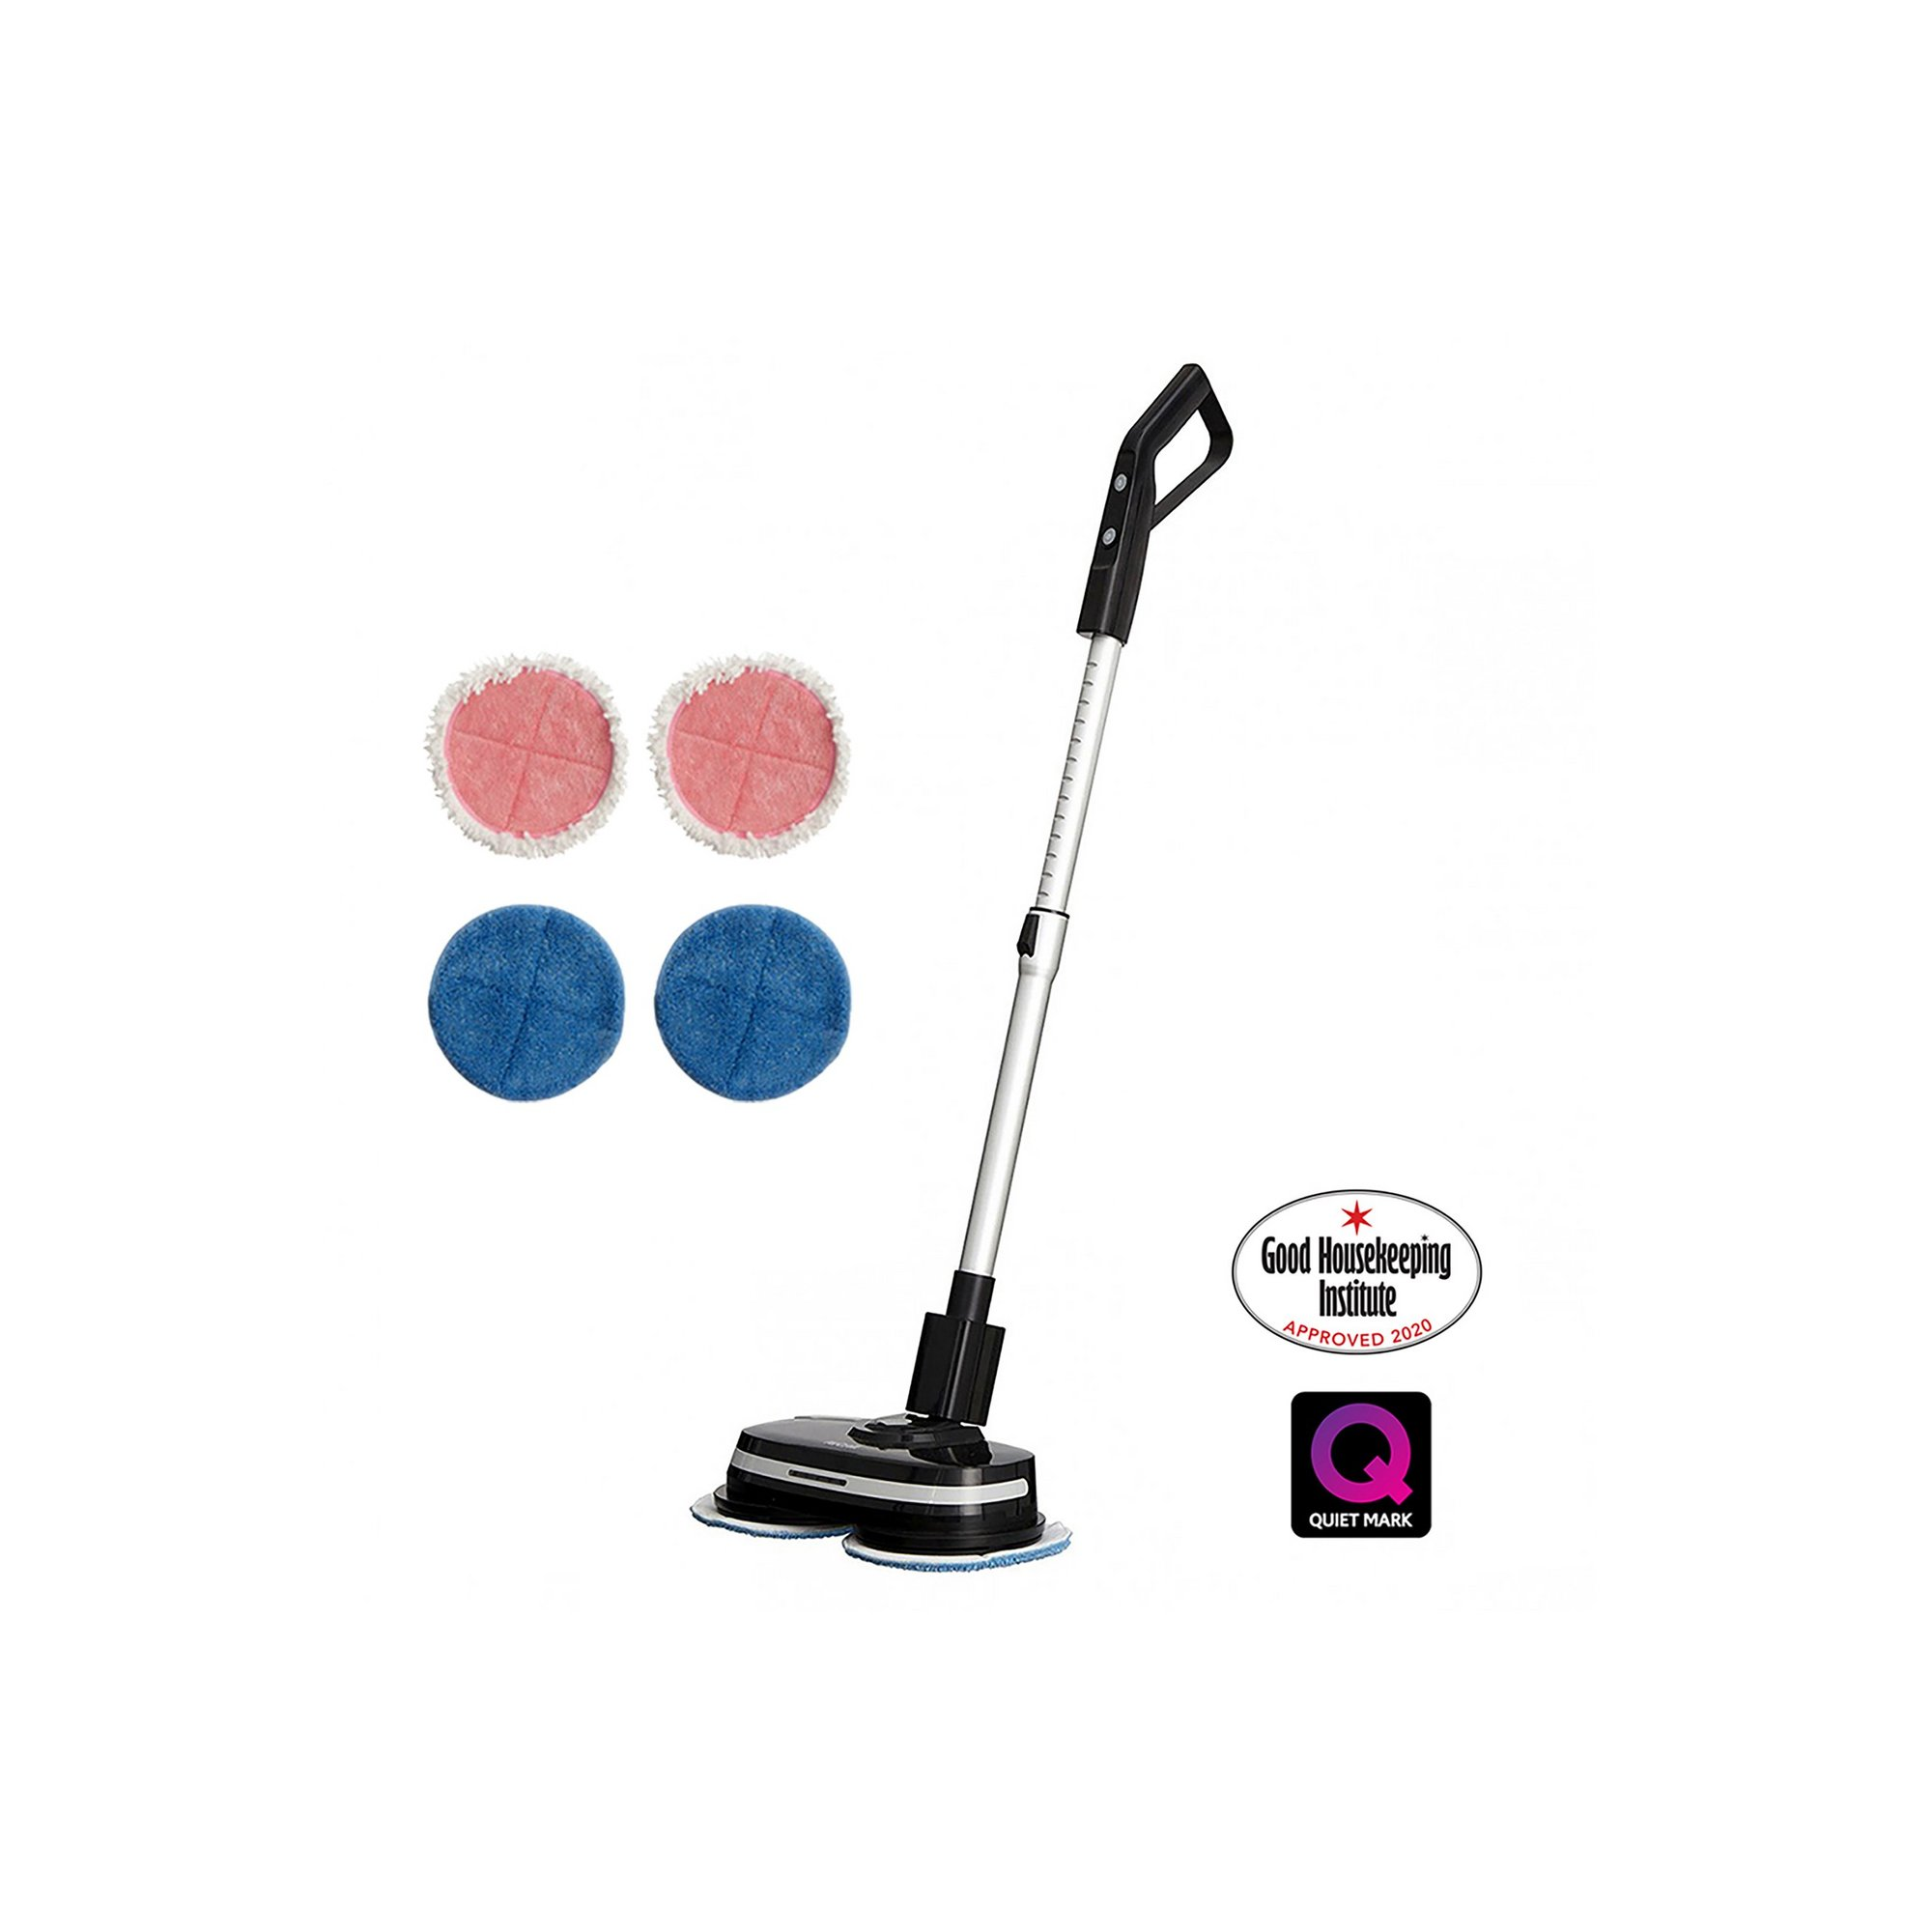 Image of AirCraft PowerGlide Cordless Hard Floor Cleaner